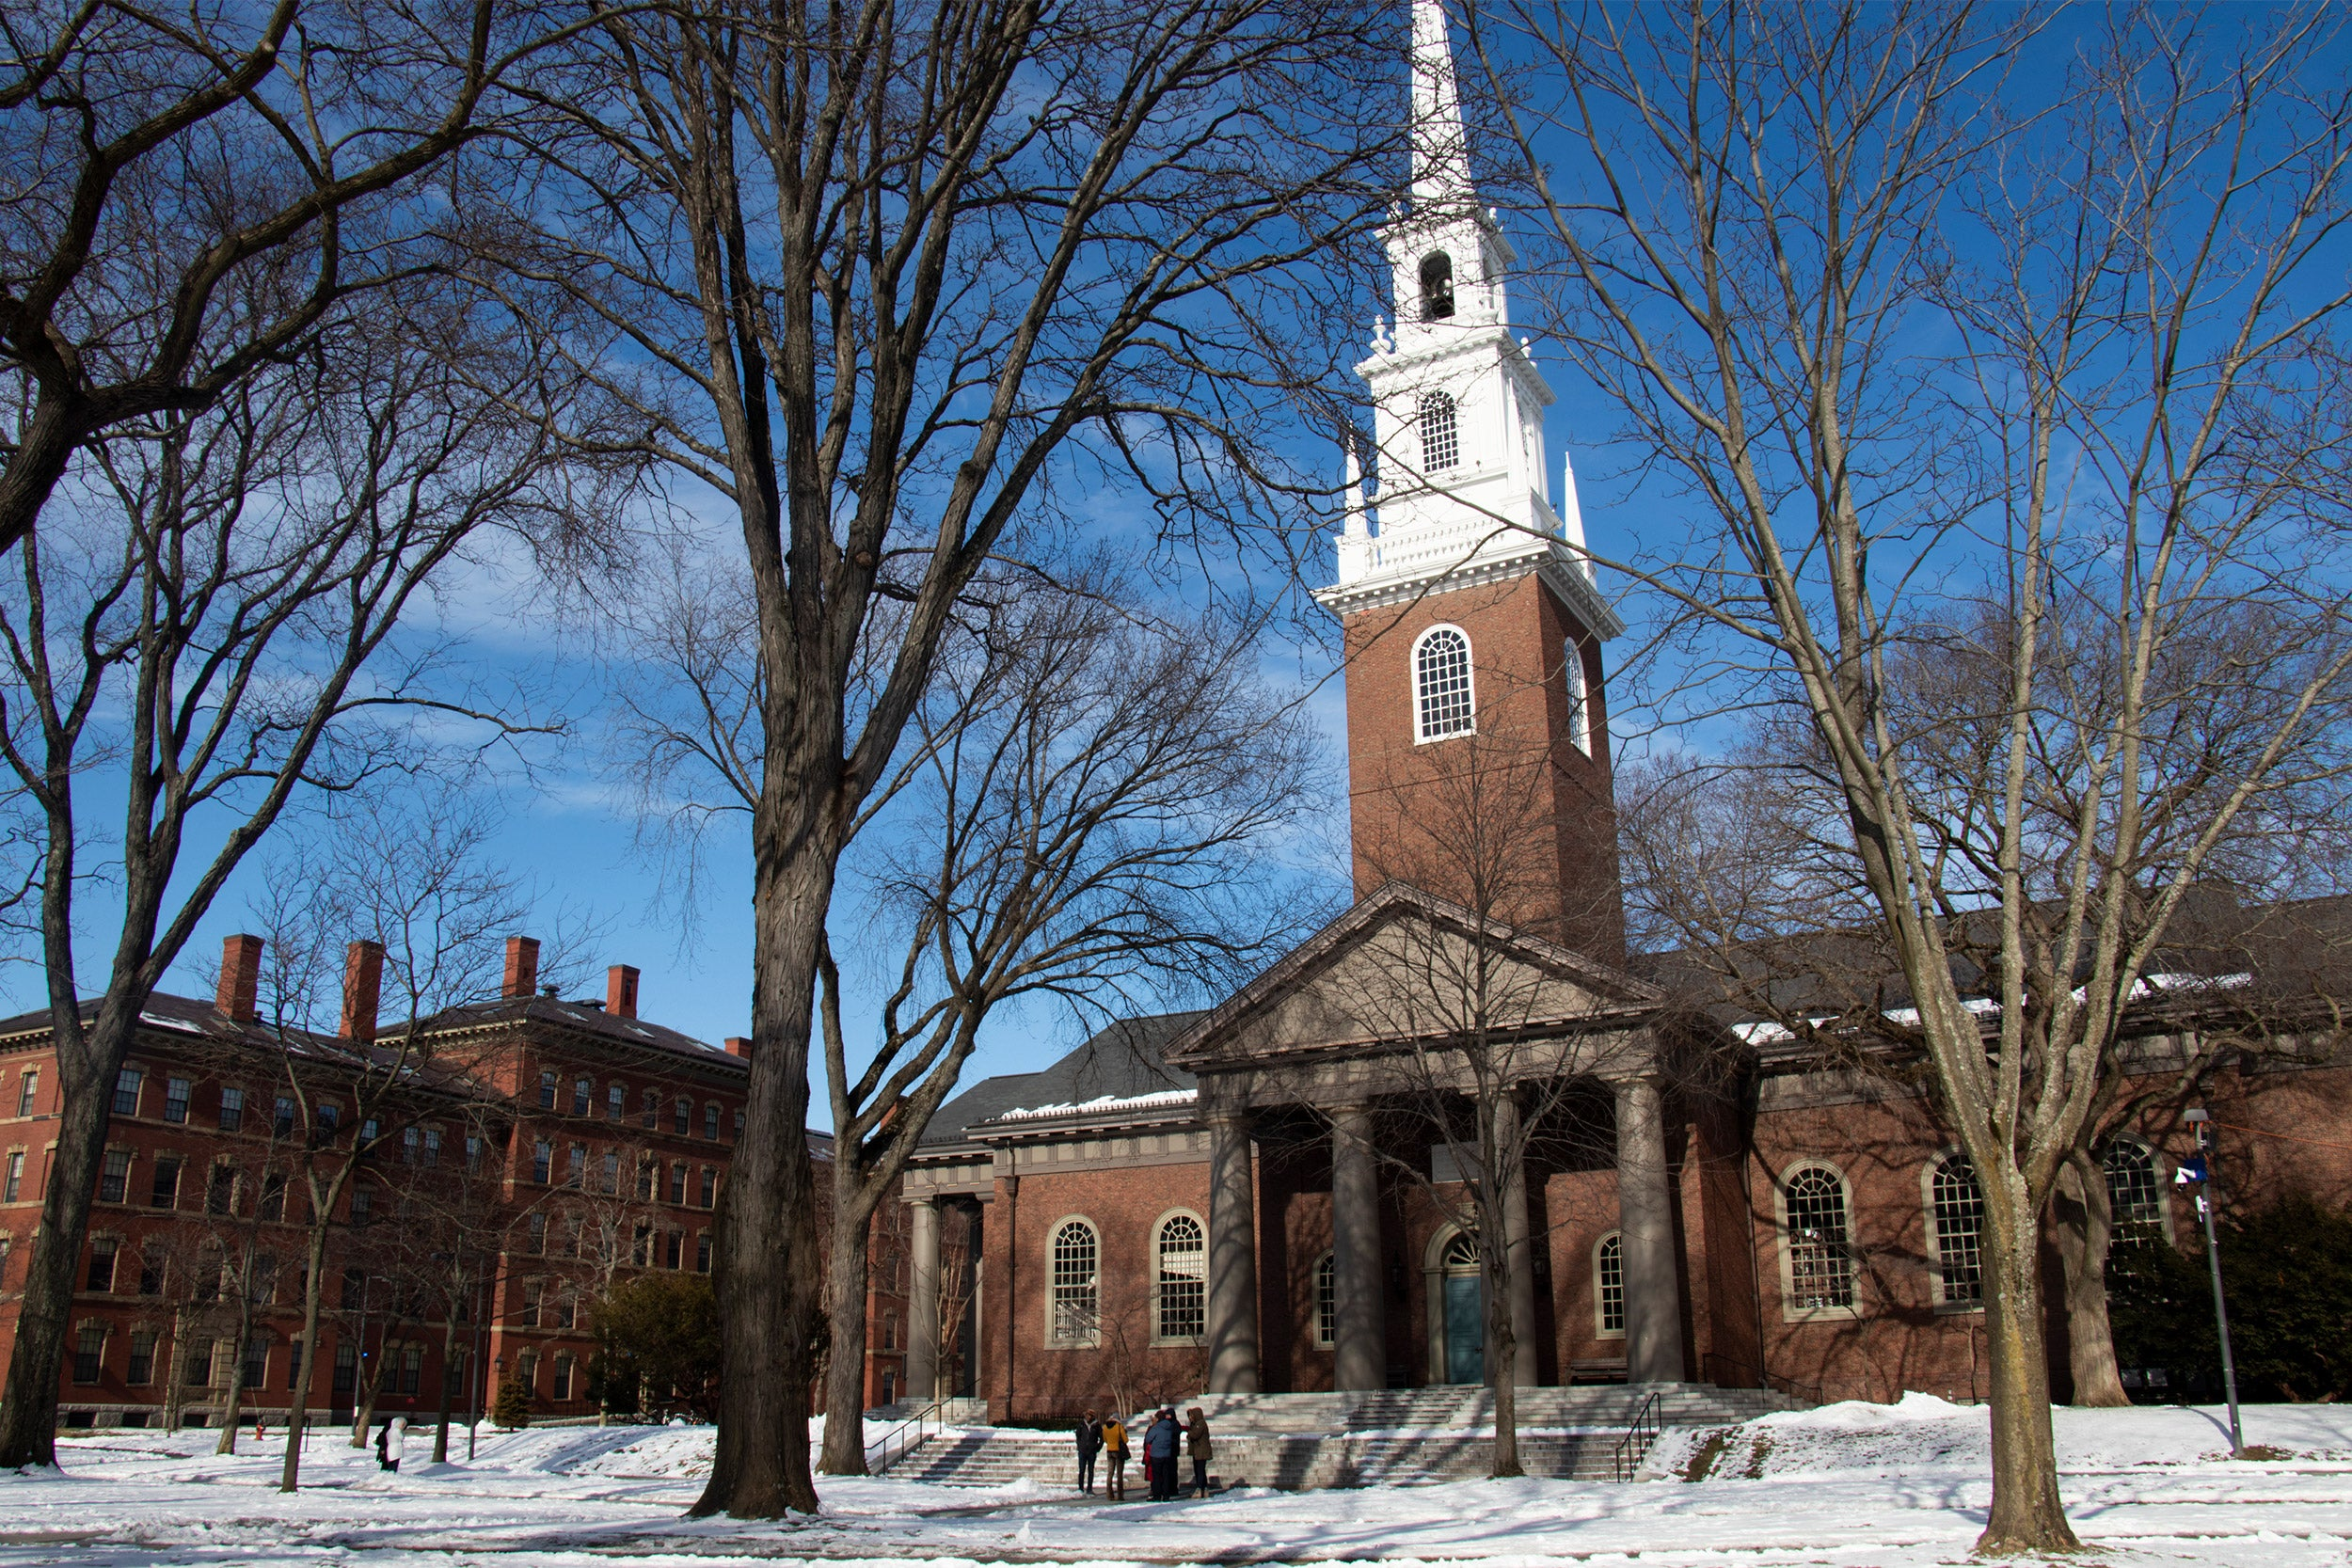 Visitors walk through Harvard Yard.